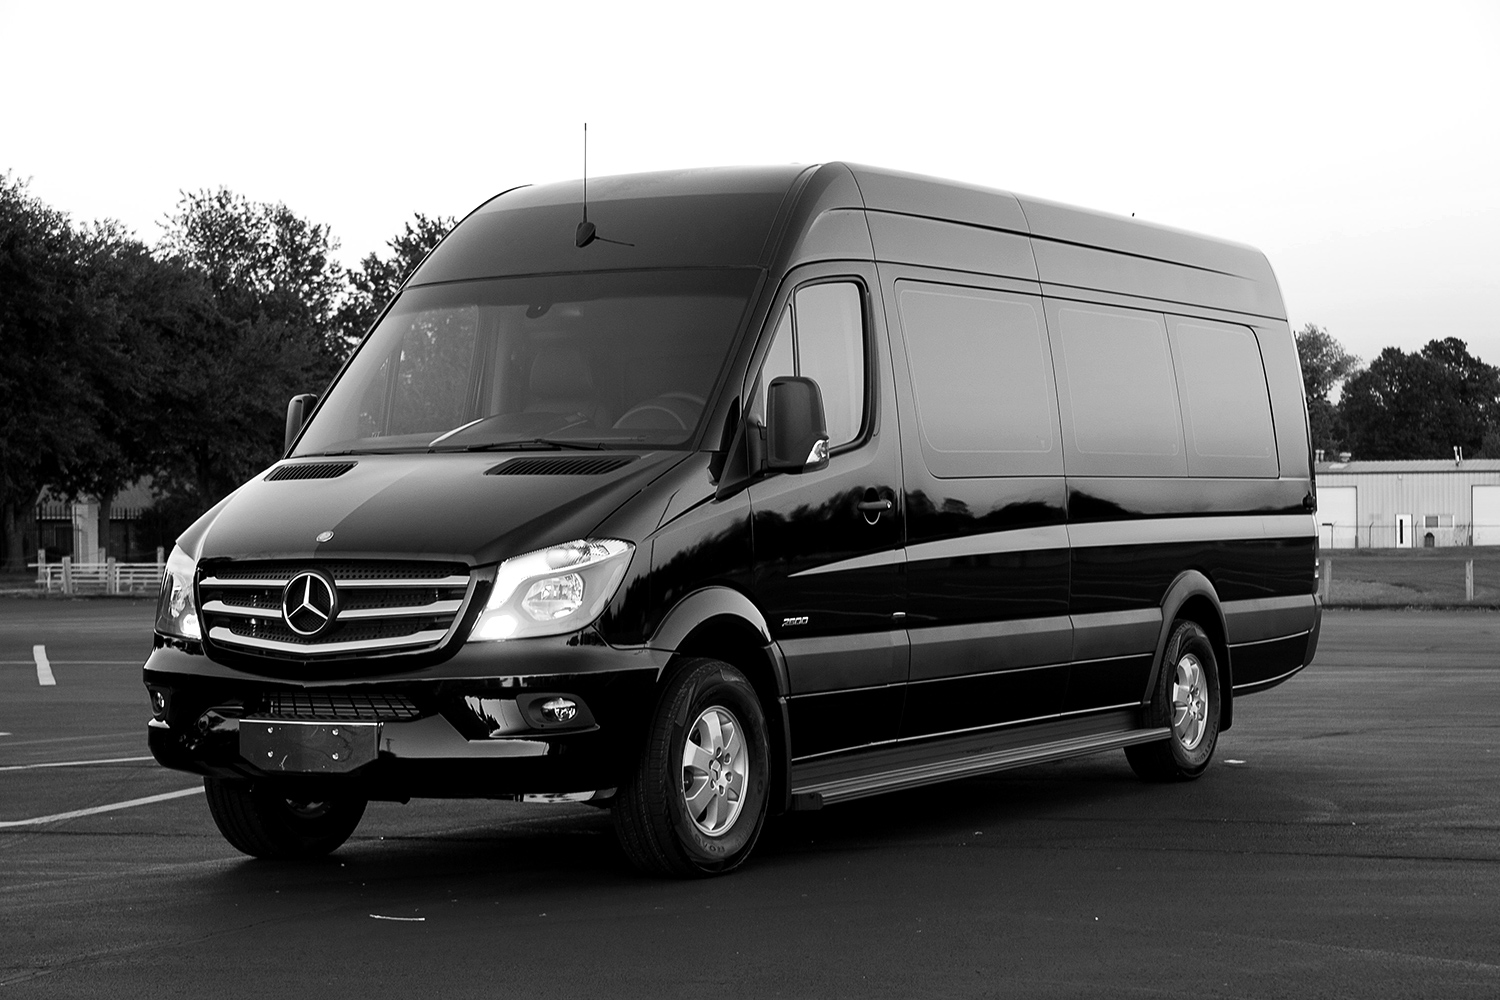 Executive Van transport